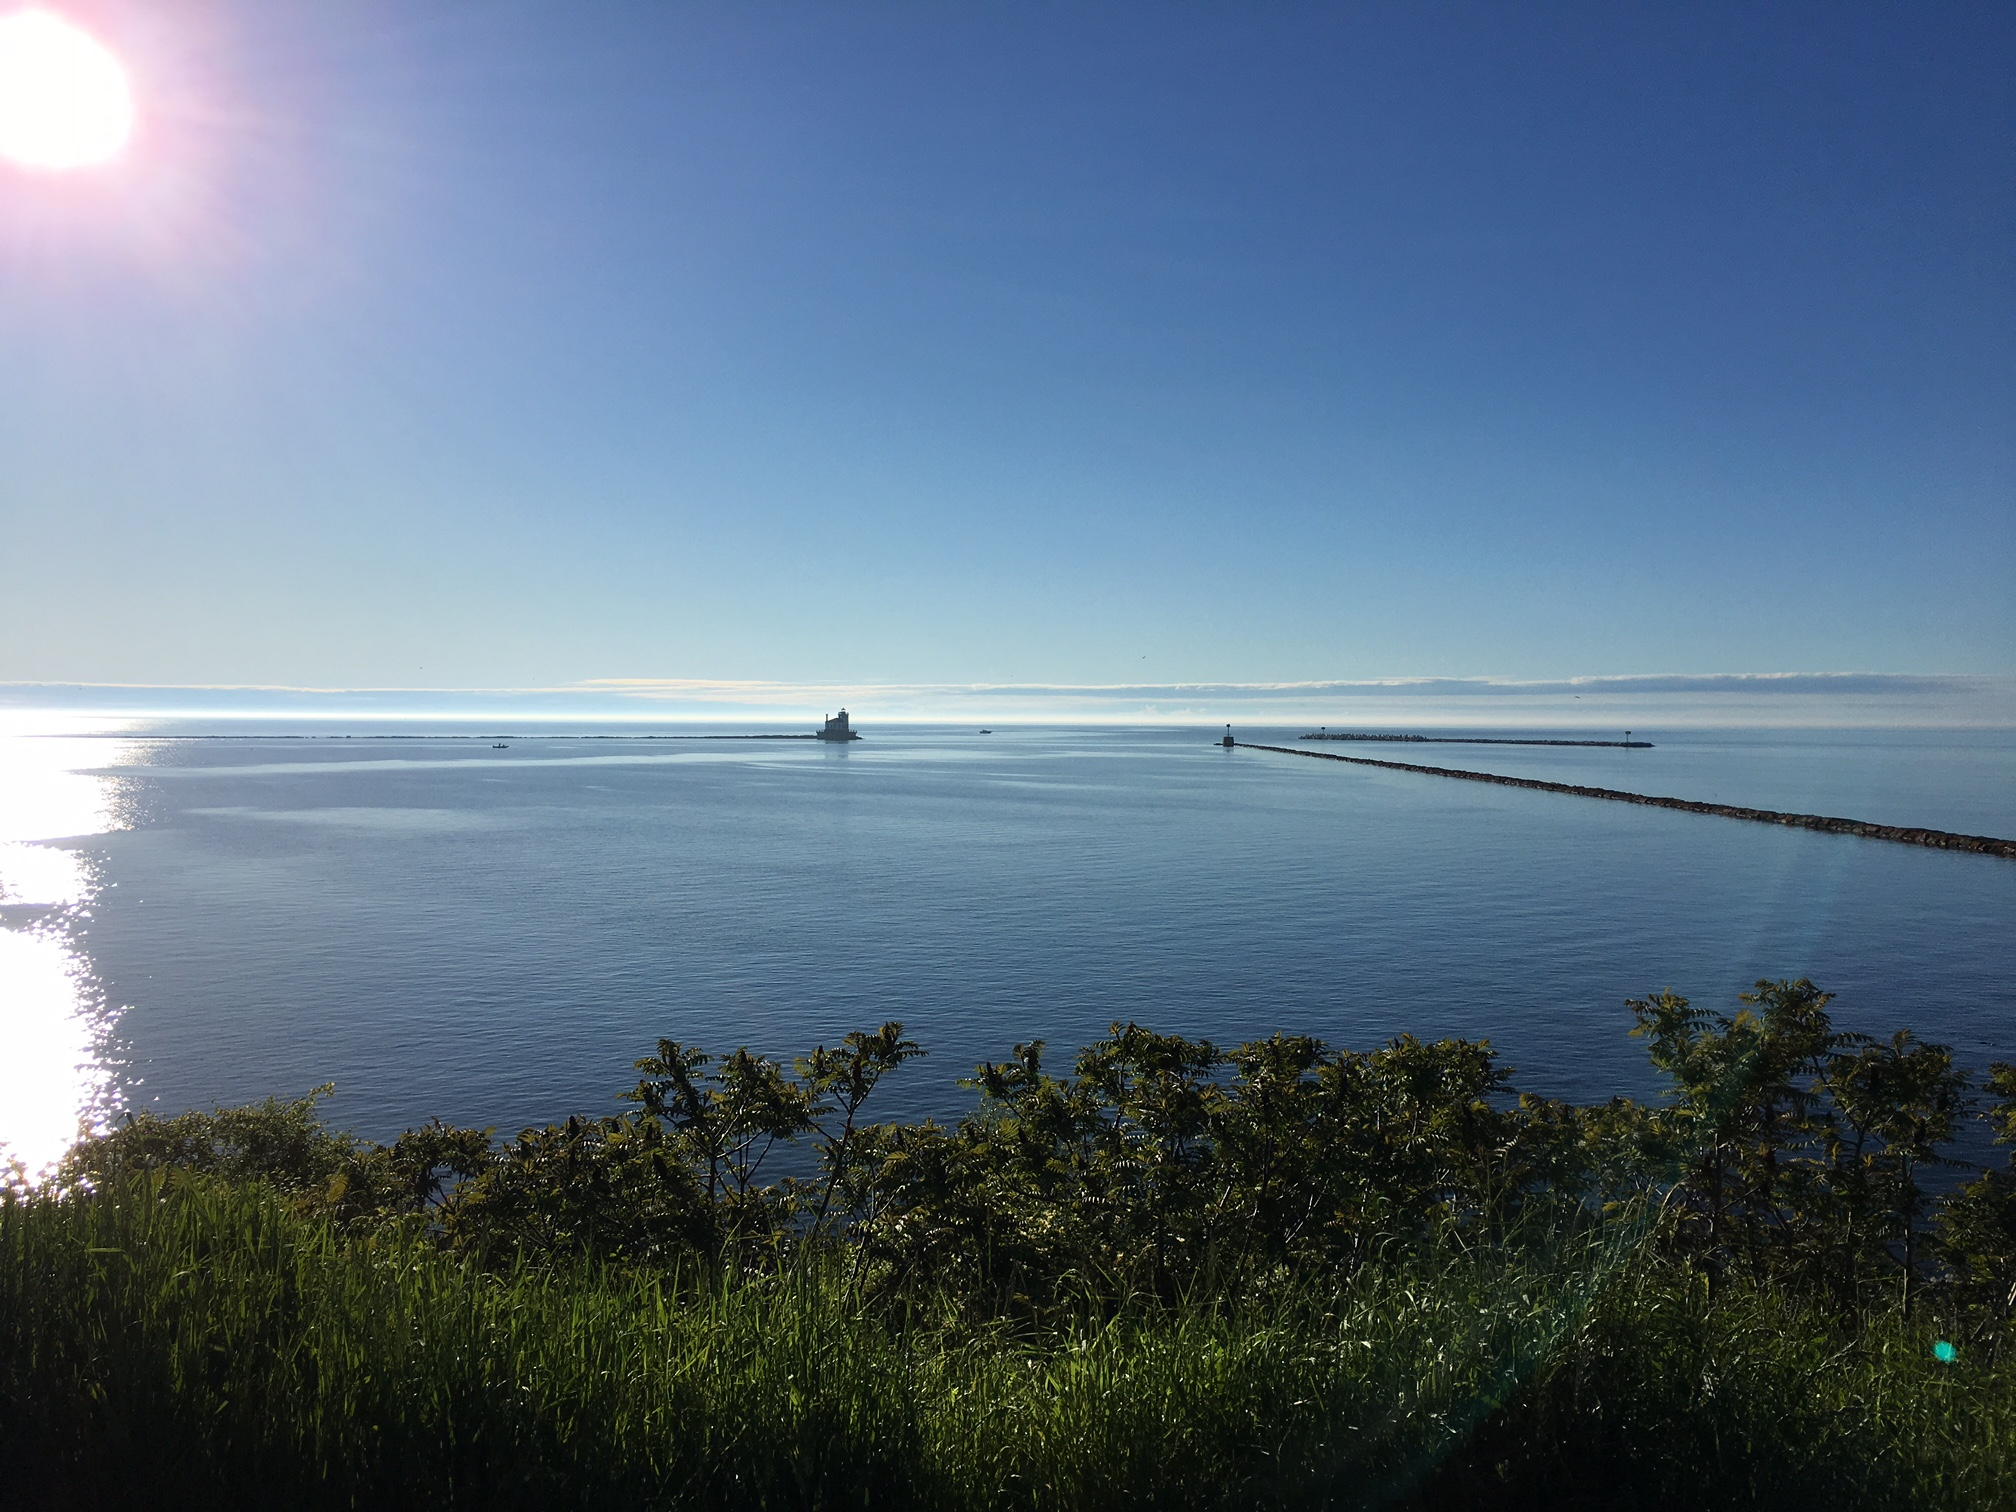 Looking out at the lighthouse on Ontario Lake, from Fort Oswego, May 27, 2017